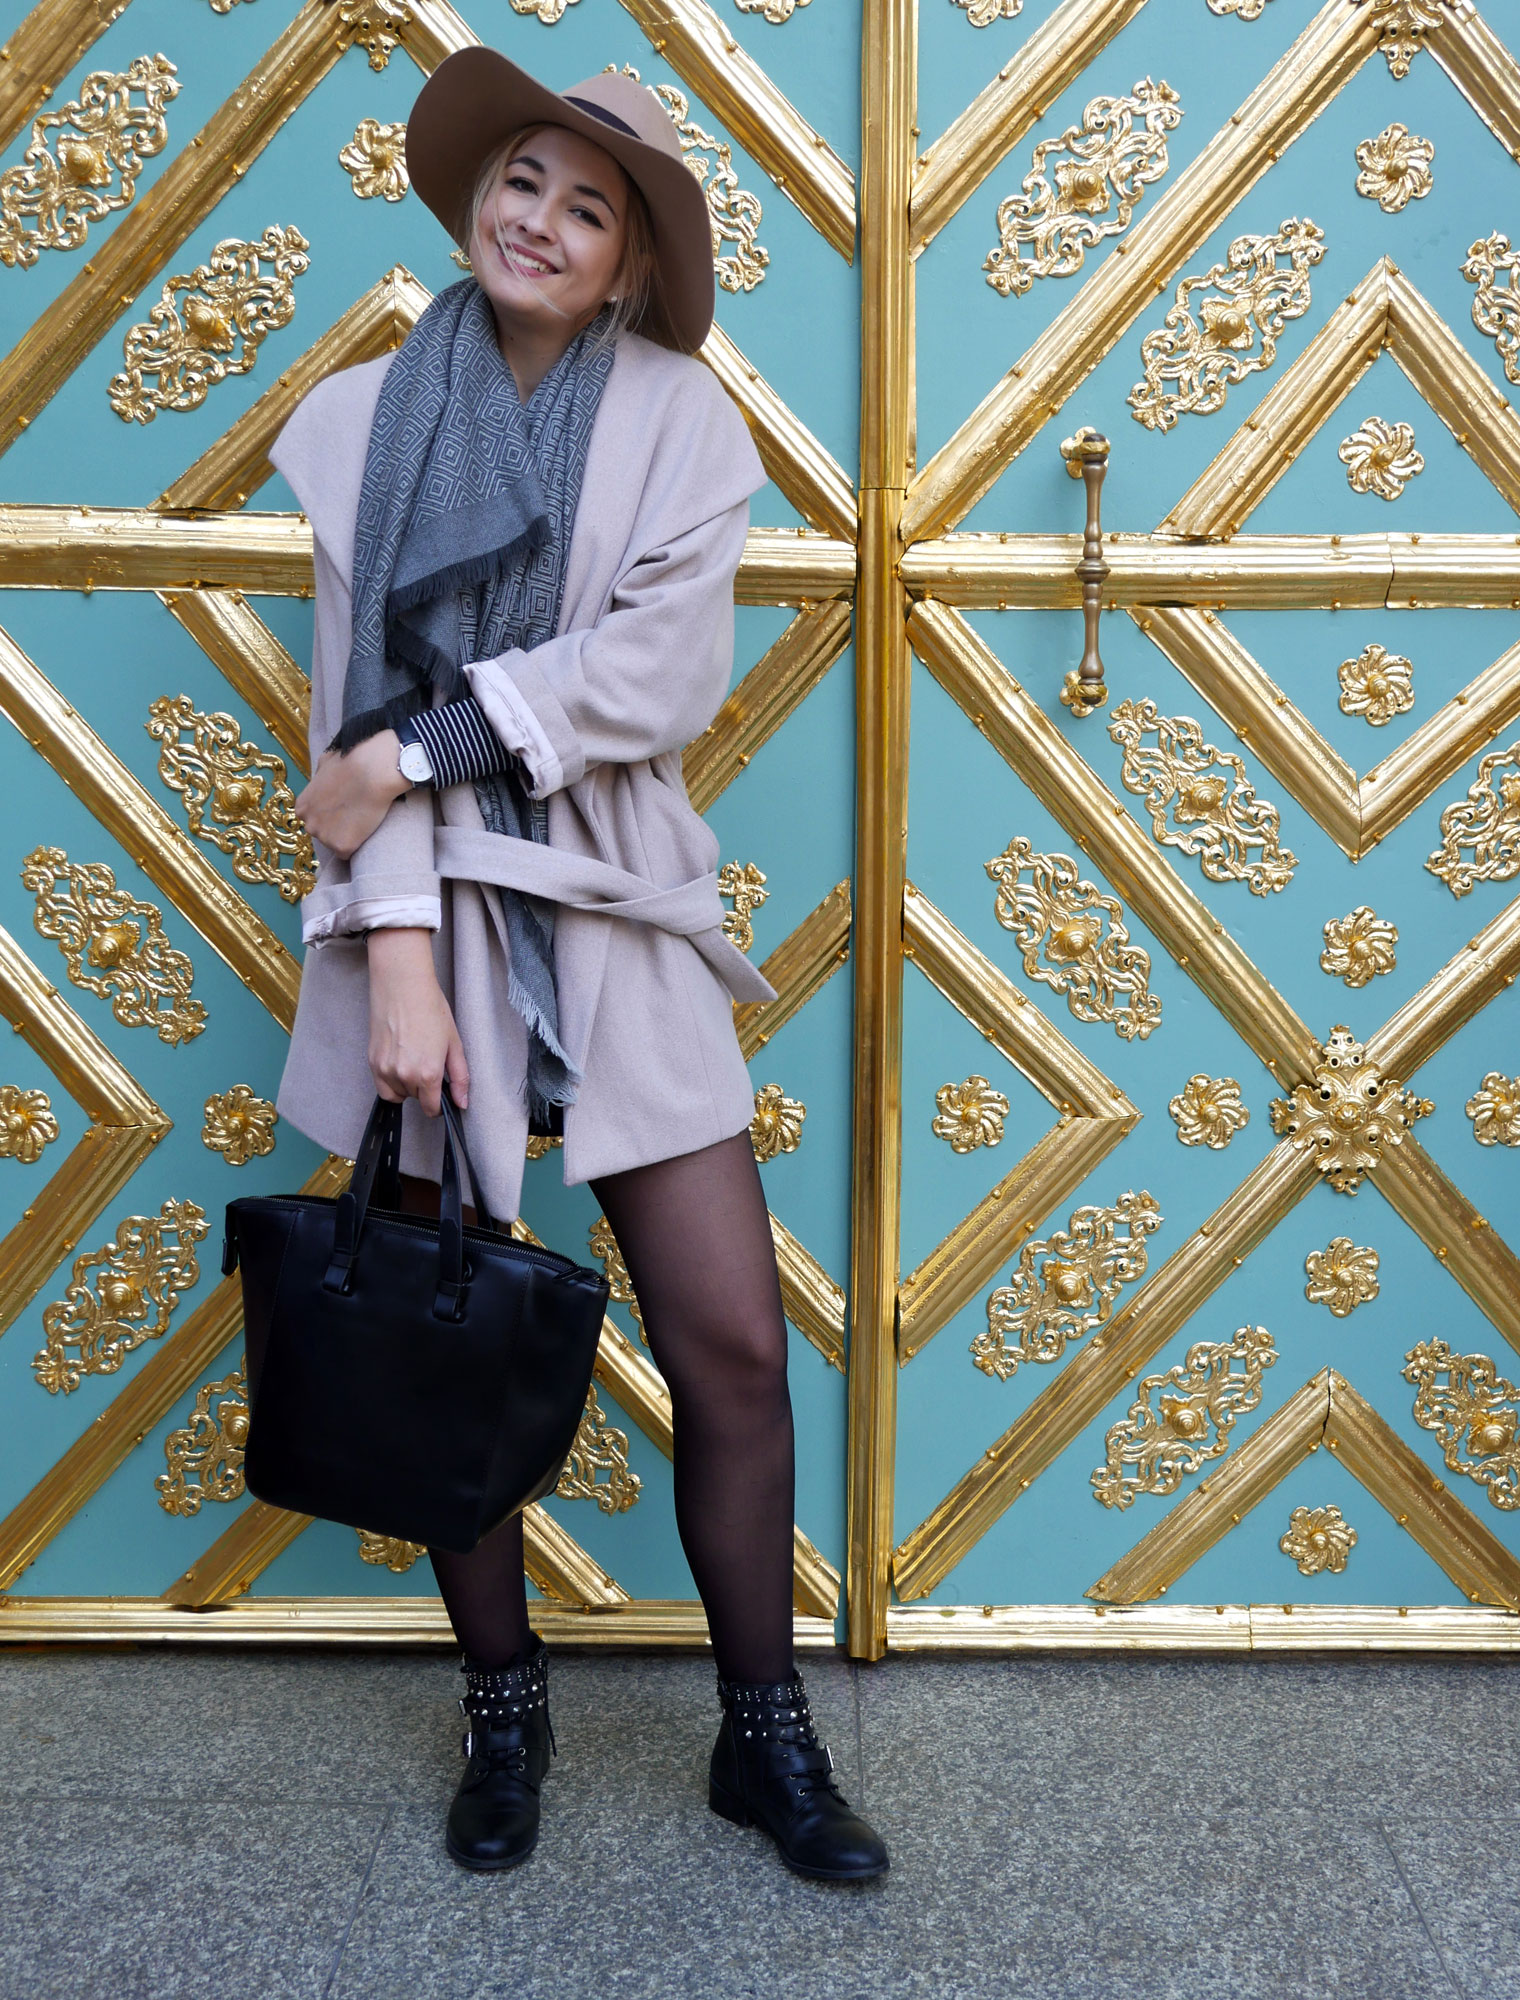 bloglightmag-feature-magazin-fleurrly-girl-personal-happy-outfit-blogger-hut-muenchen-ootd-offshoulder-herbst.jpg